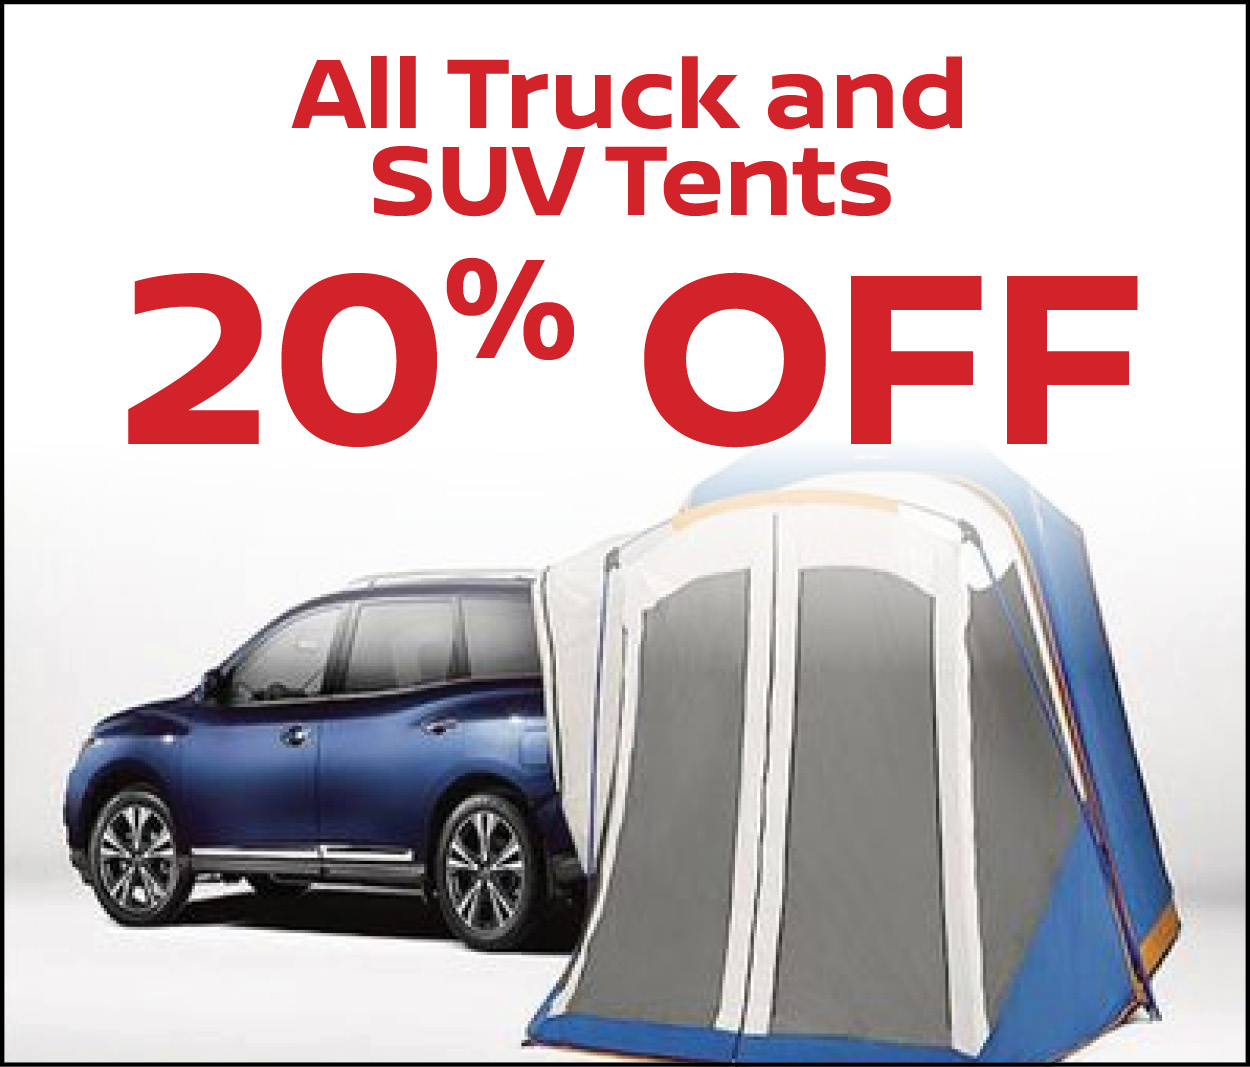 All Truck and SUV Tents